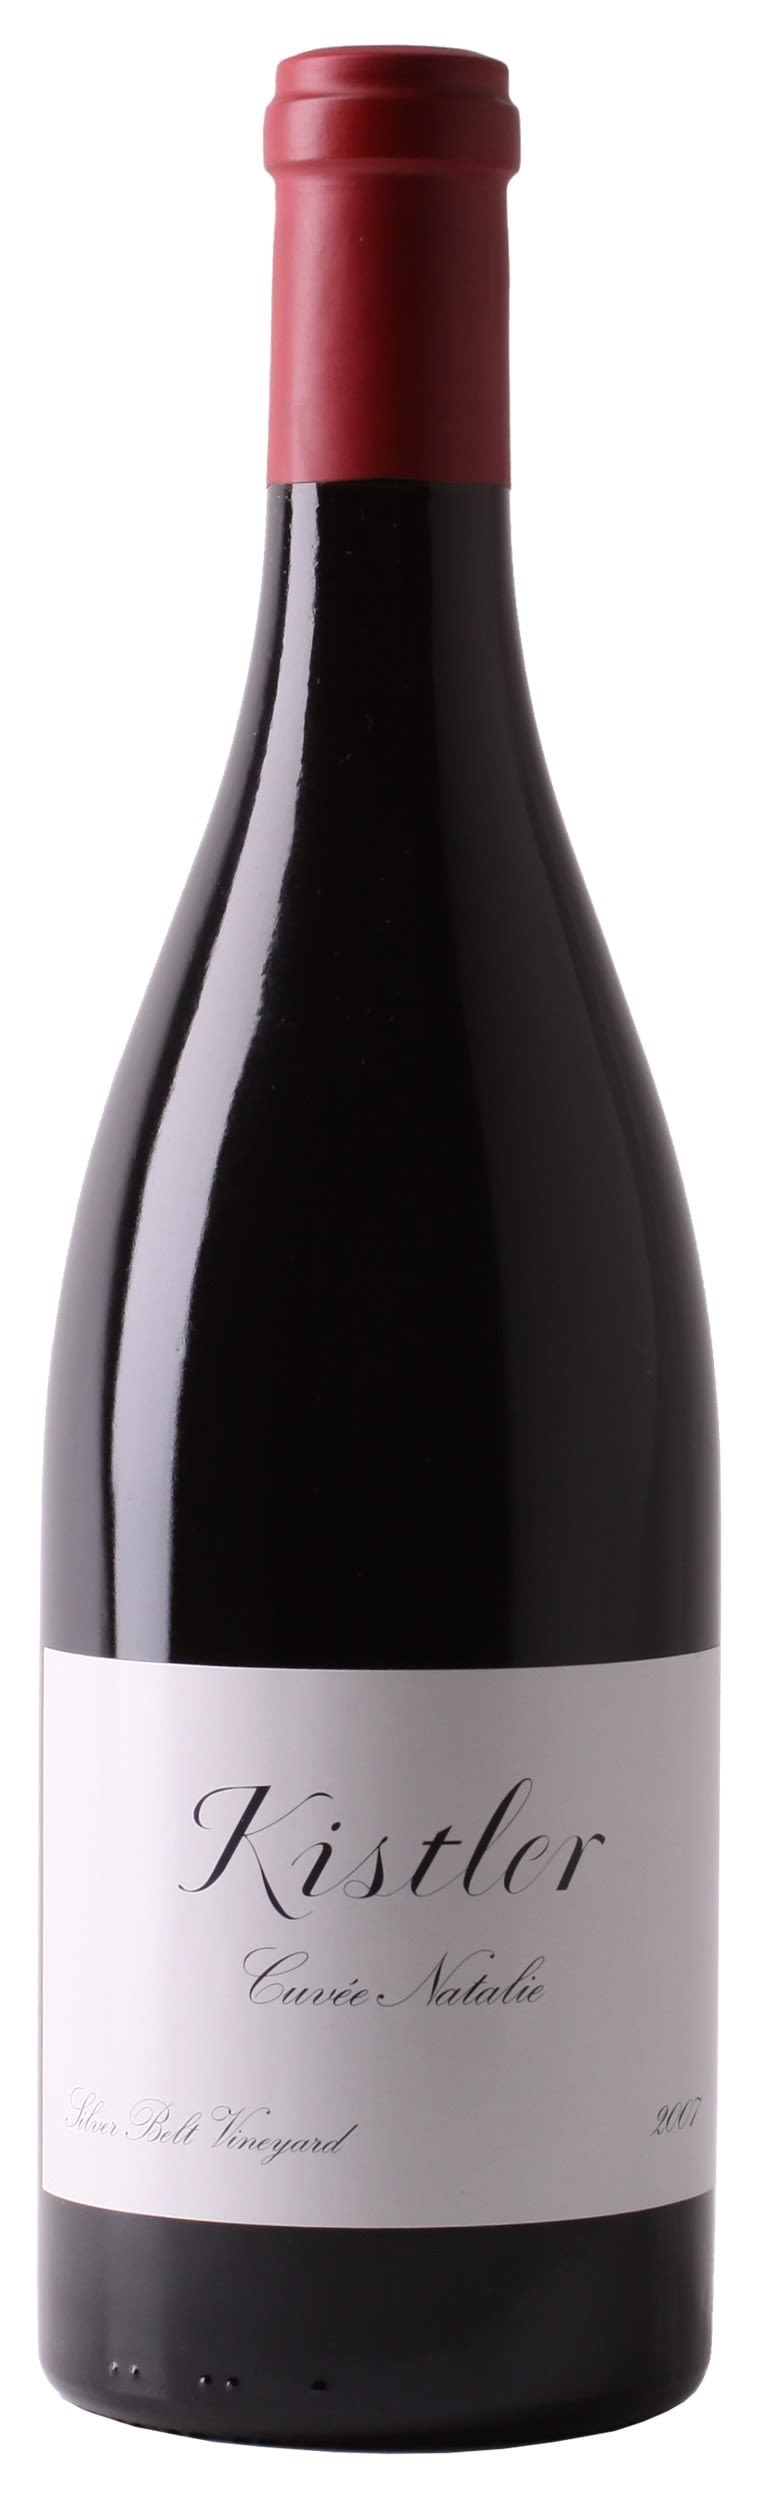 Kistler Vineyards Cuvee Natalie Pinot Noir 2007  Front Bottle Shot